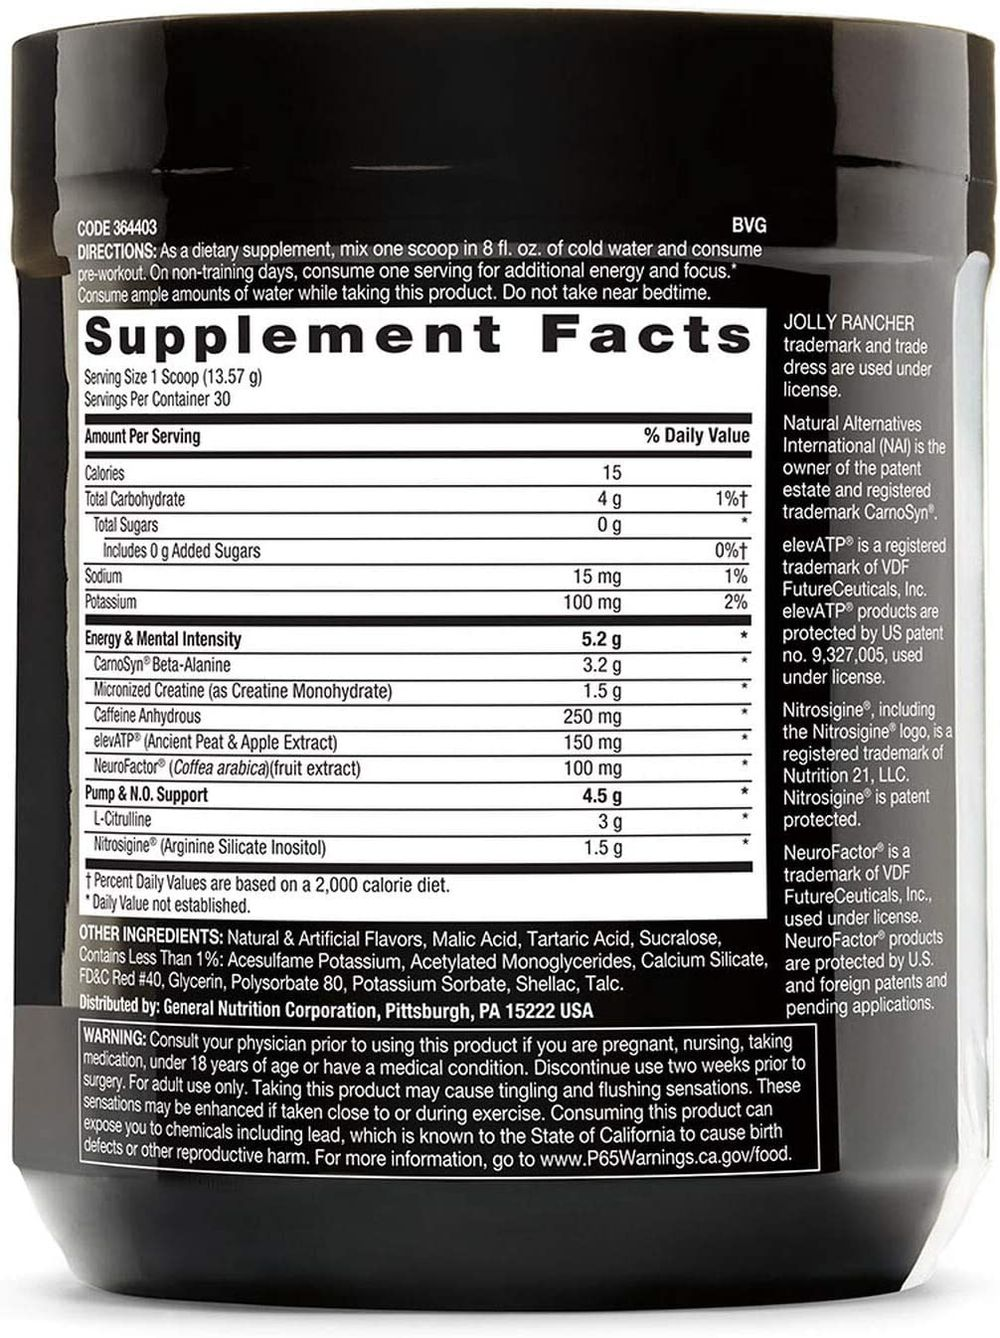 Beyond Raw LIT   Clinically Dosed Pre-Workout Powder   Contains Caffeine, L-Citruline, and Beta-Alanine, Nitrix Oxide and Preworkout Supplement   Jolly Rancher Watermelon   30 Servings